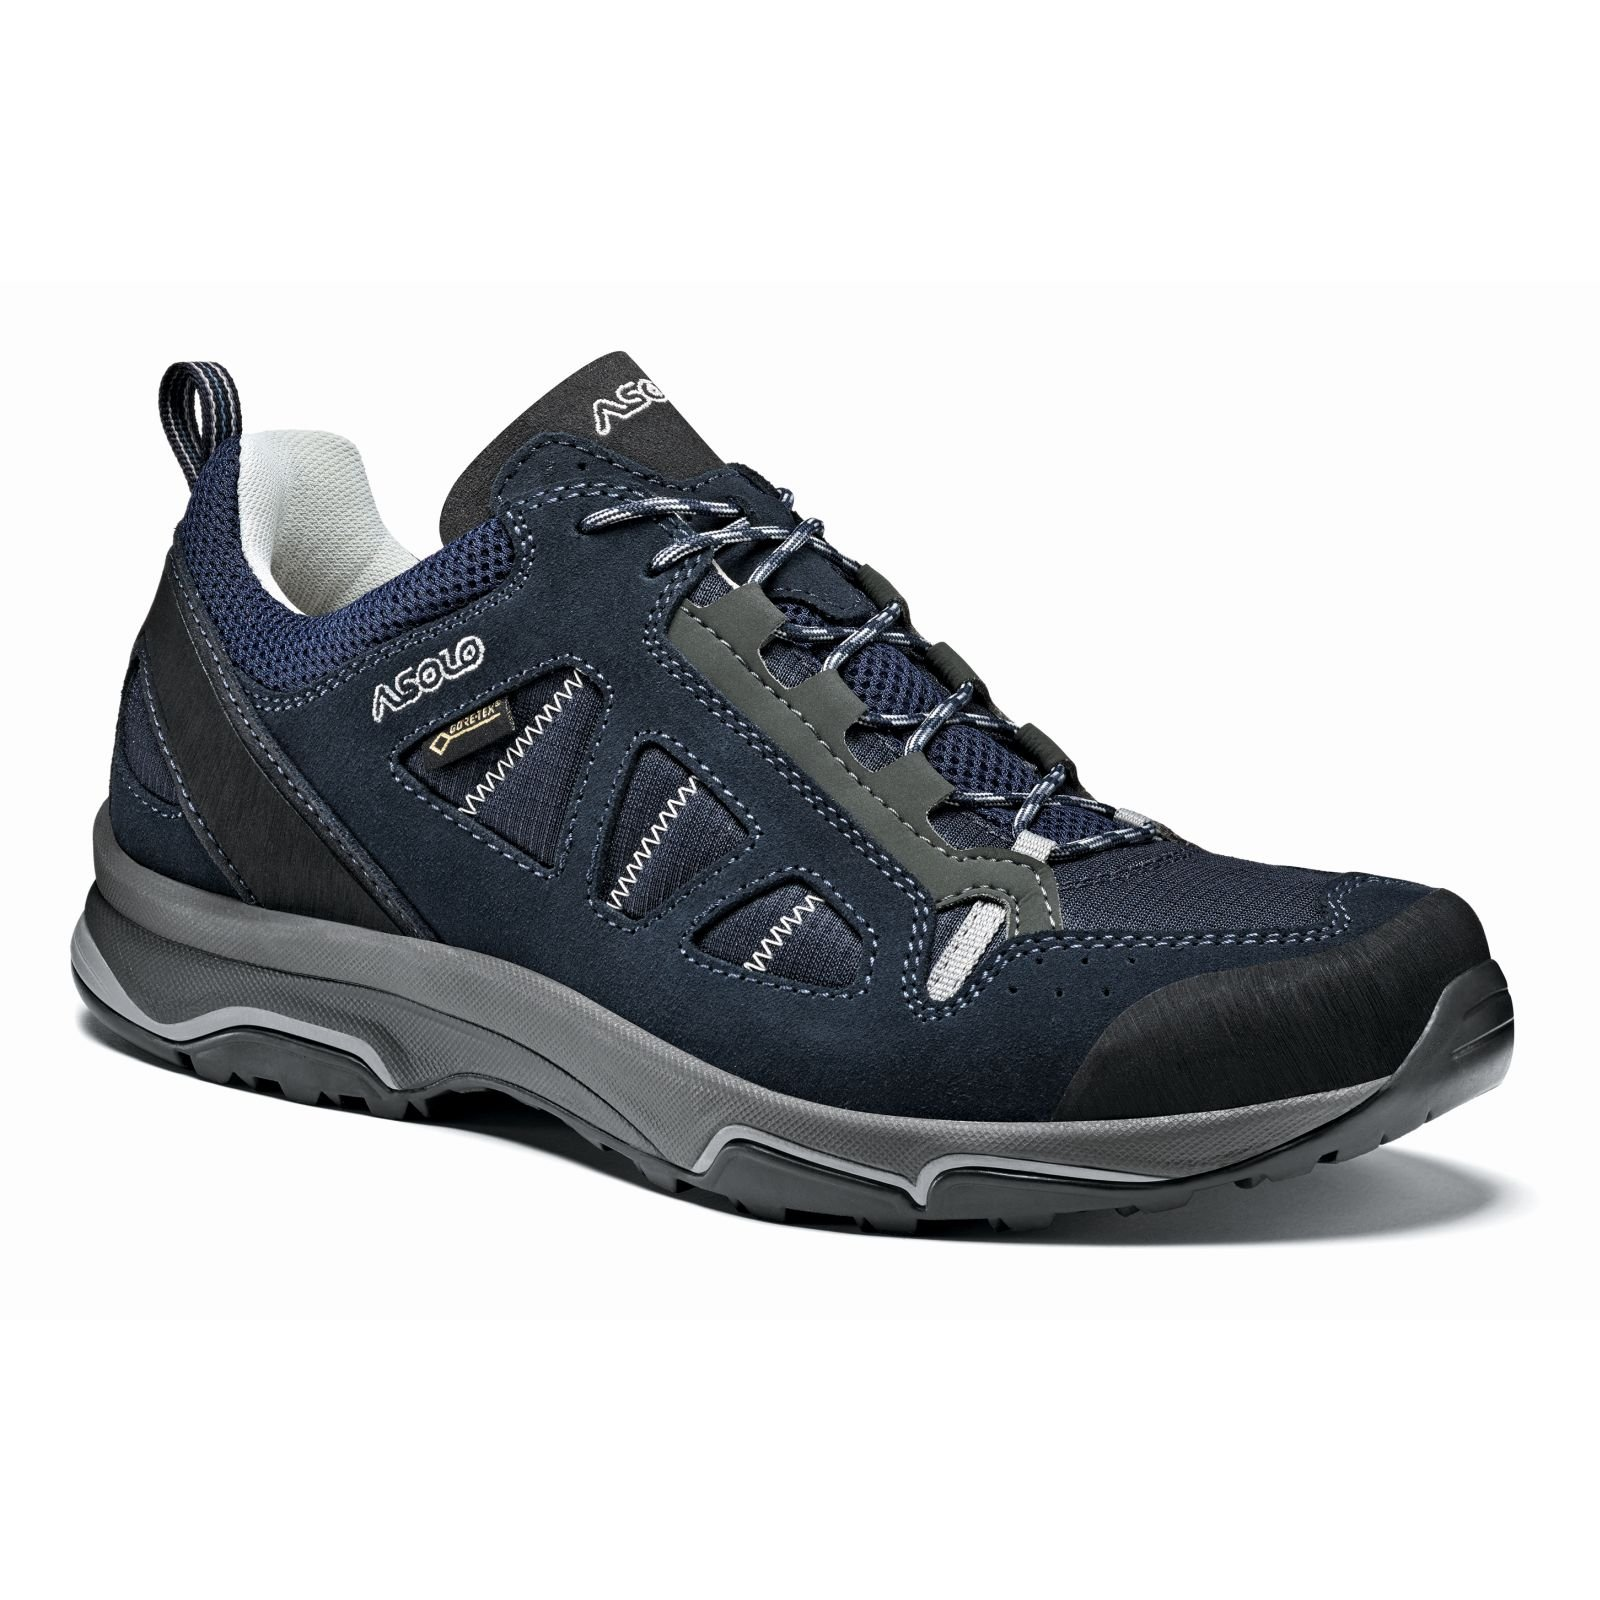 3e421ce4f33 Asolo Megaton GV GTX Hiking Shoe - Mens, Blueberry/Night Blue,  A40010-Blueberry/Night Blue-10.5